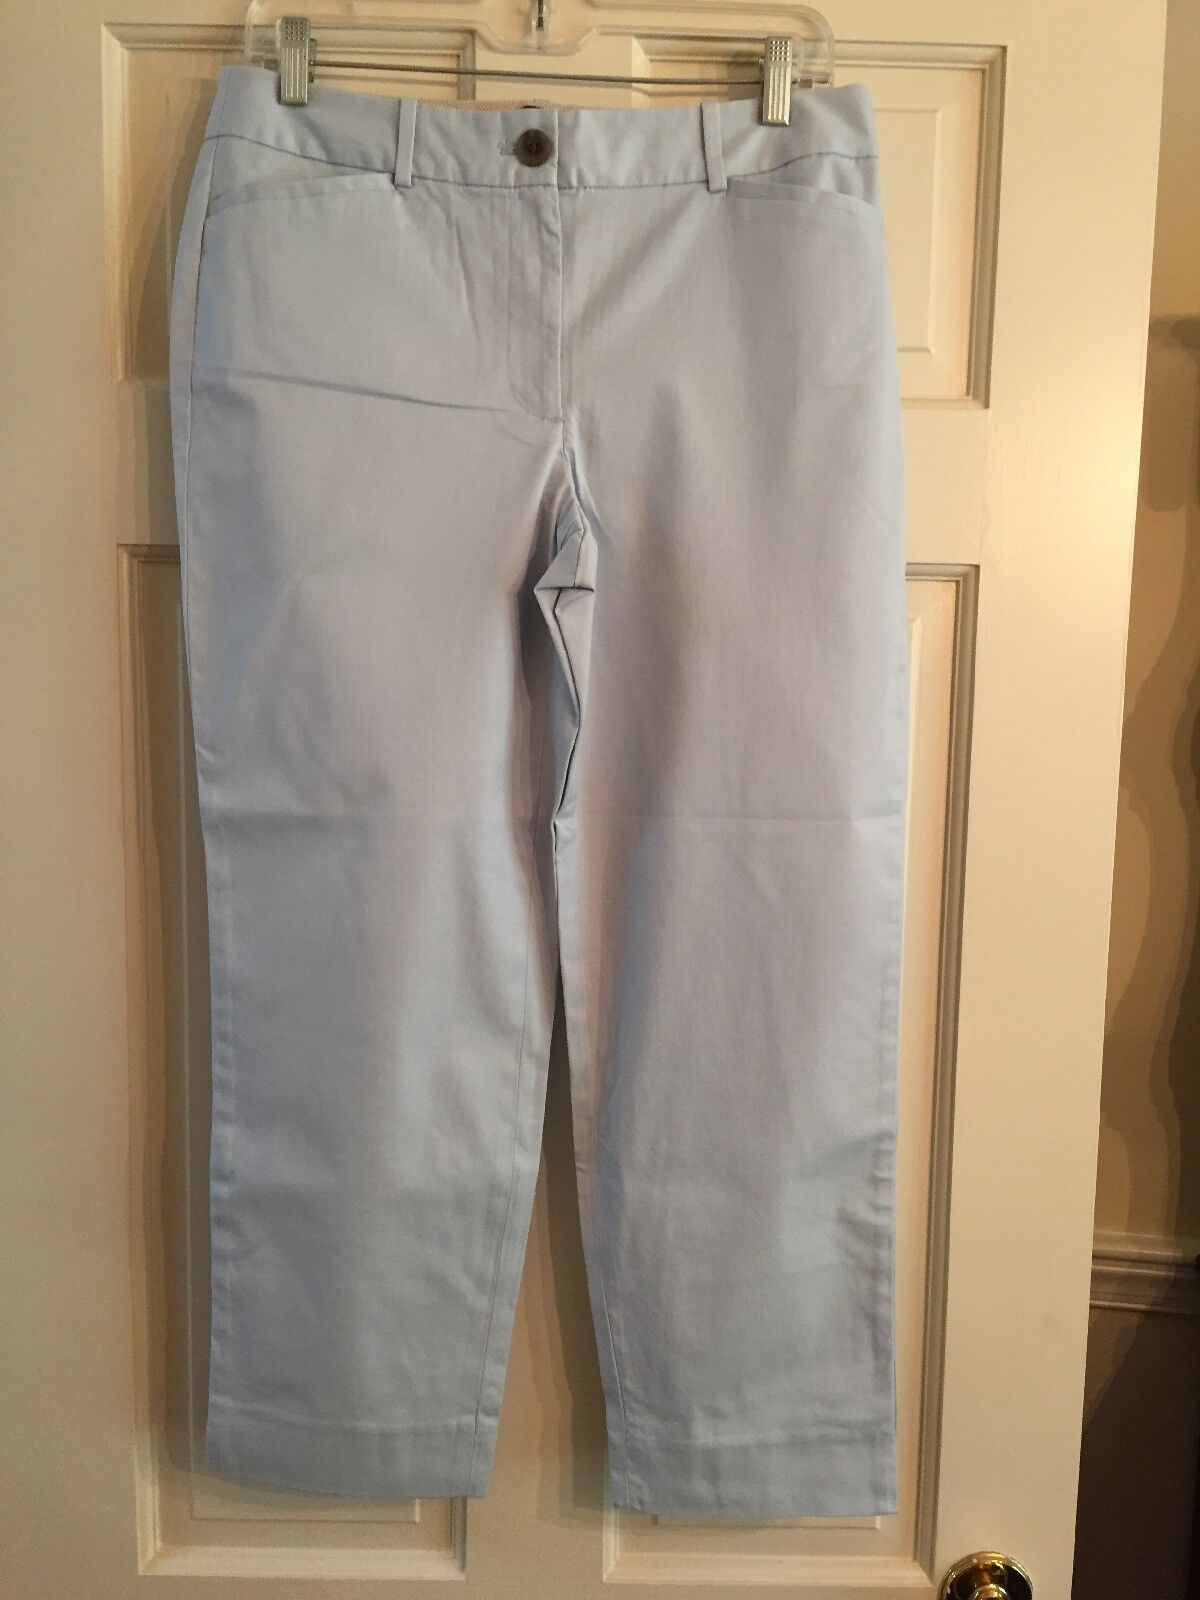 NWT Talbots The Perfect Crop Curvy Crystal bluee Misses Size 6  69.50